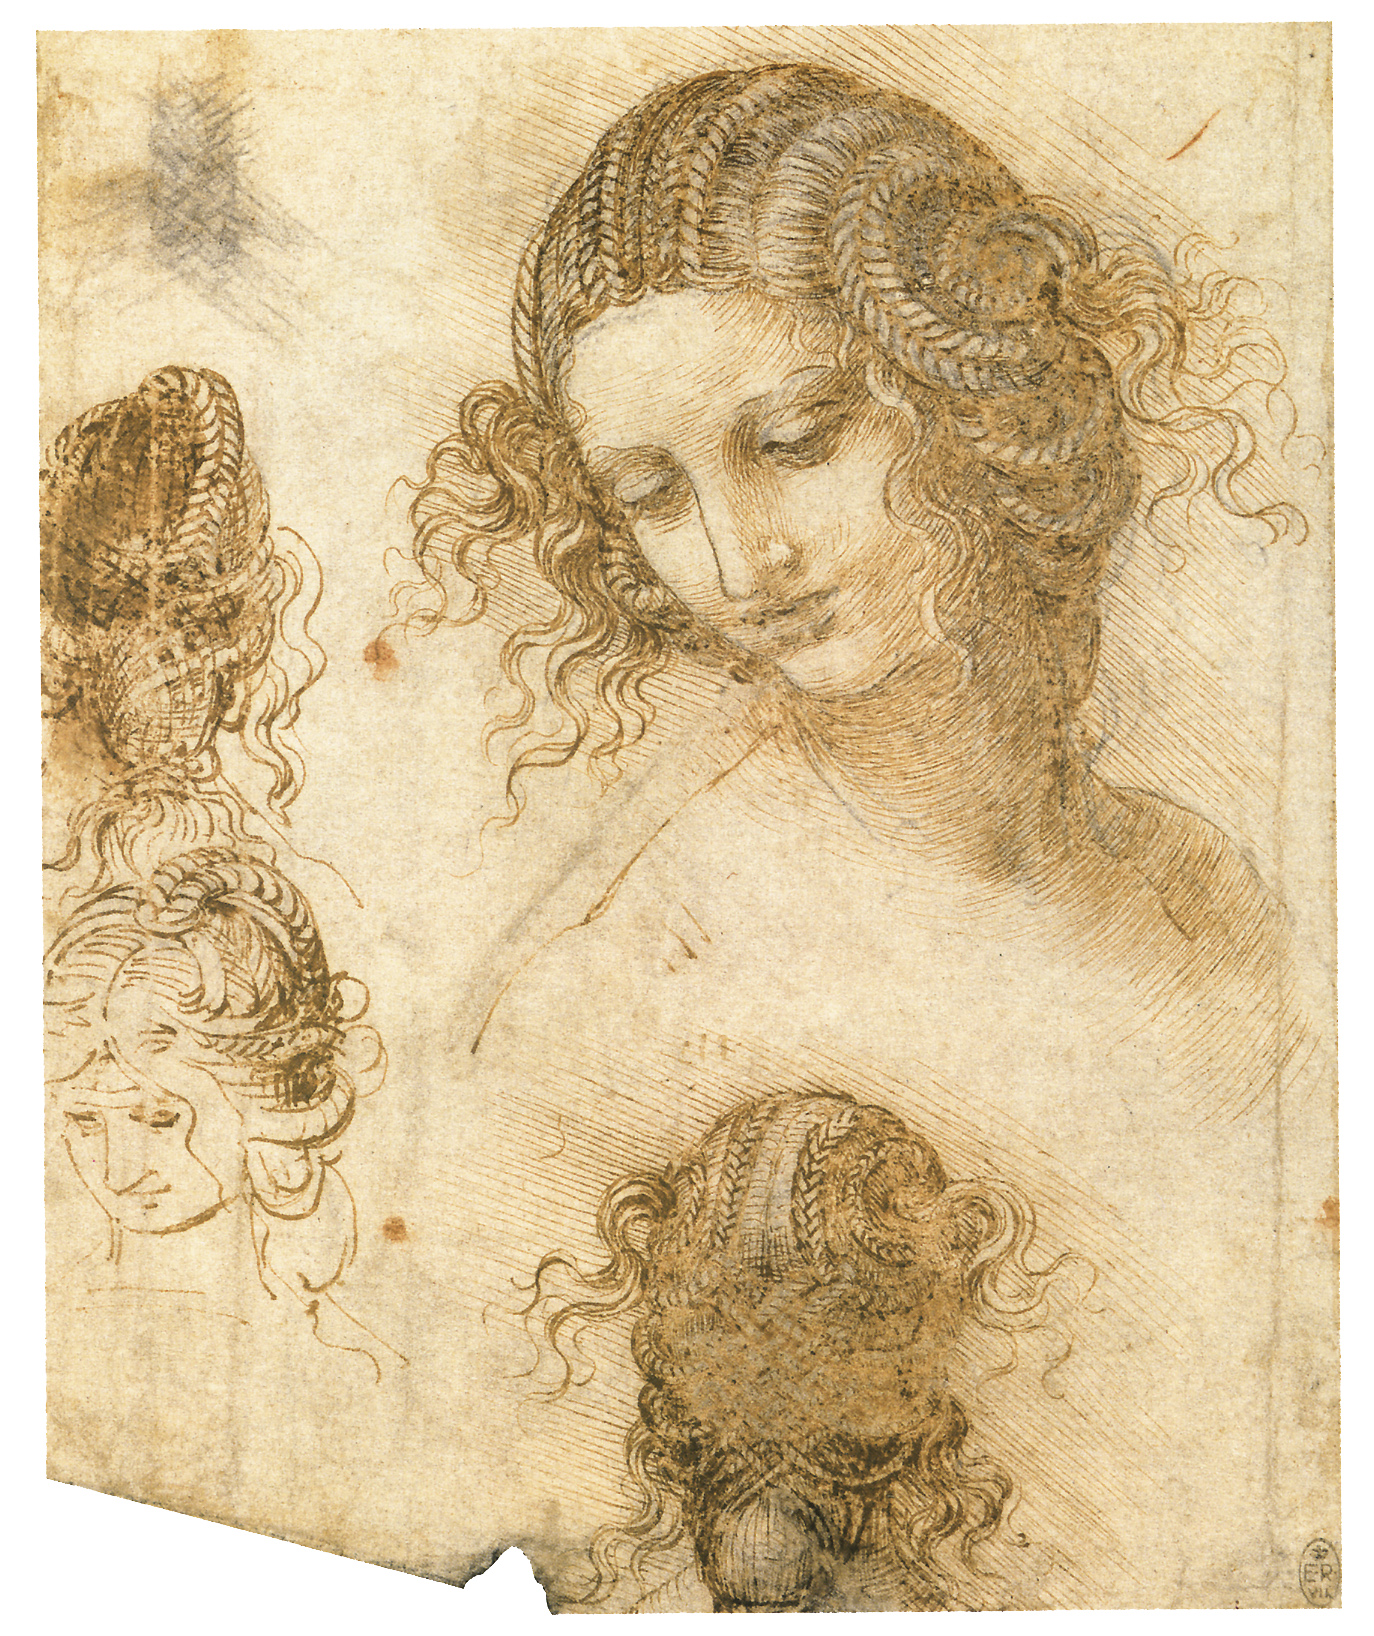 the life and paintings of leonardo da vinci Leonardo da vinci mona lisa overview of the theories about who is depicted in leonardo da vinci's famous mona lisa painting encyclopædia britannica, inc leonardo's art of expression reached another high point in the unfinished battle of anghiari.